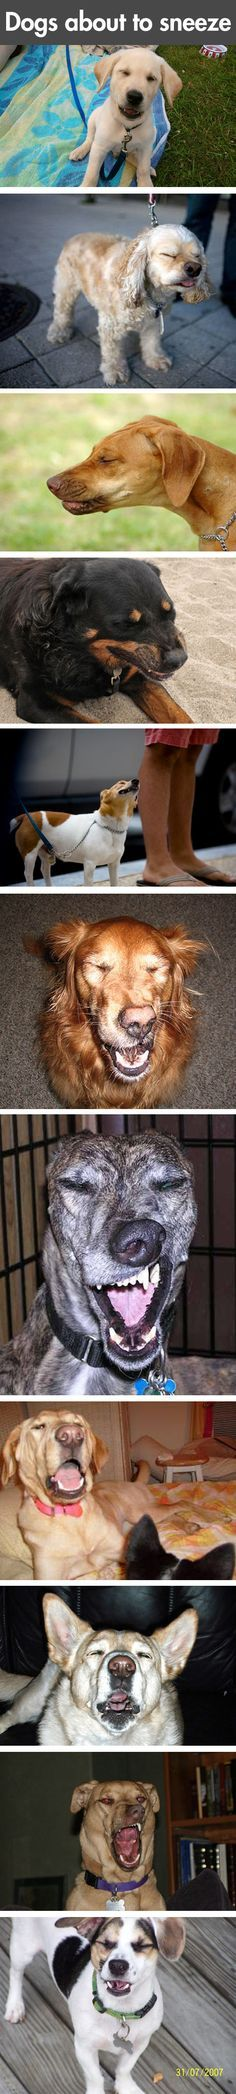 dogs about to sneeze..